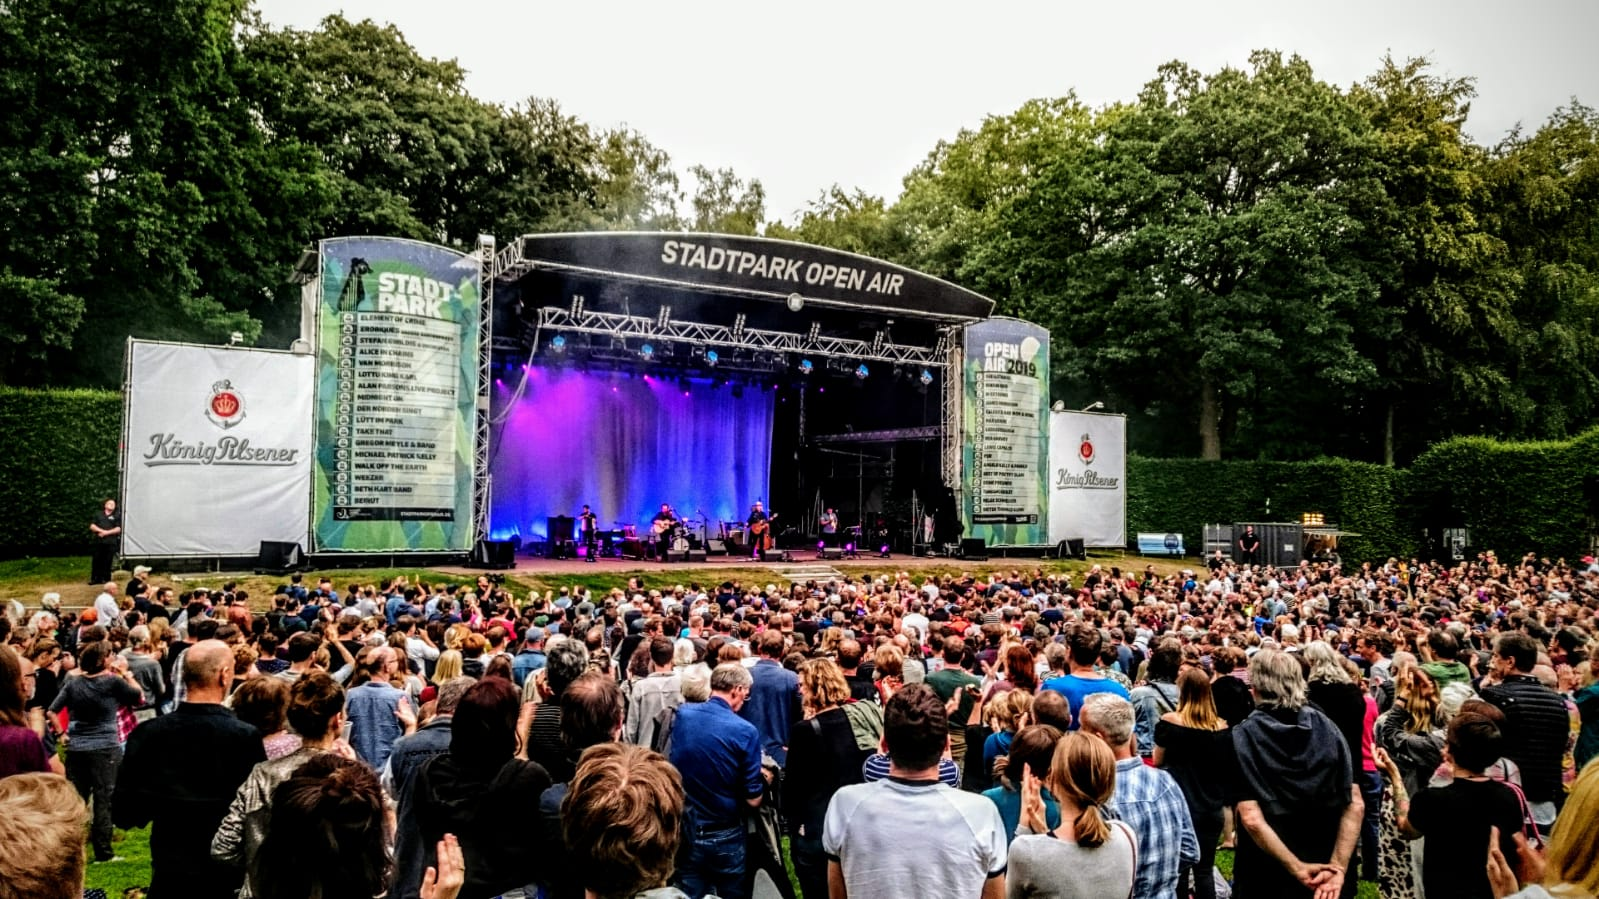 Calexico, Iron & Wine, Stadtpark, Open Air, concert, Years To Burn, Album, Folk, Pop, Country, Trees